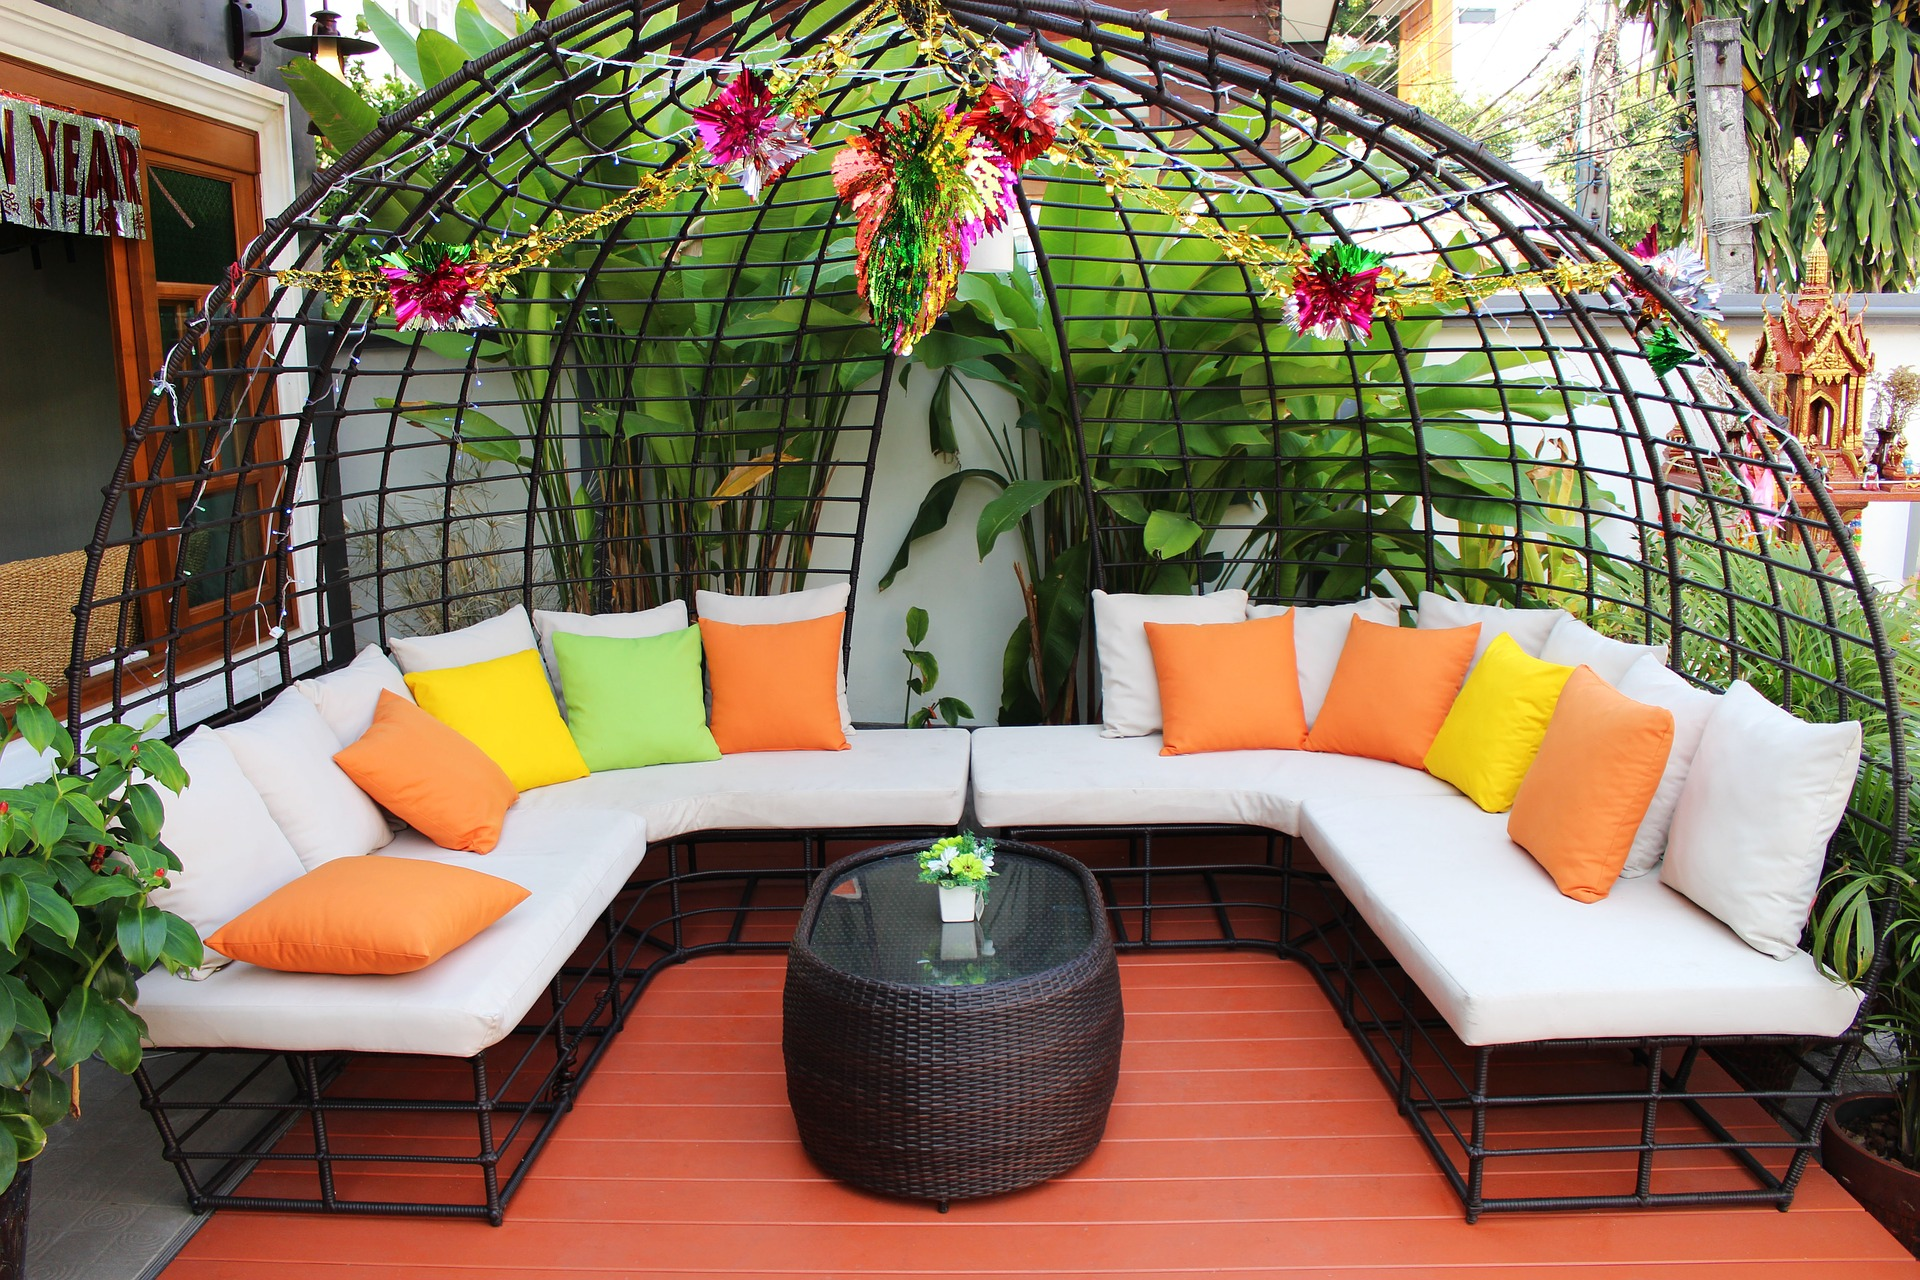 Designer Patio Furniture To Transform An Outdoor Space